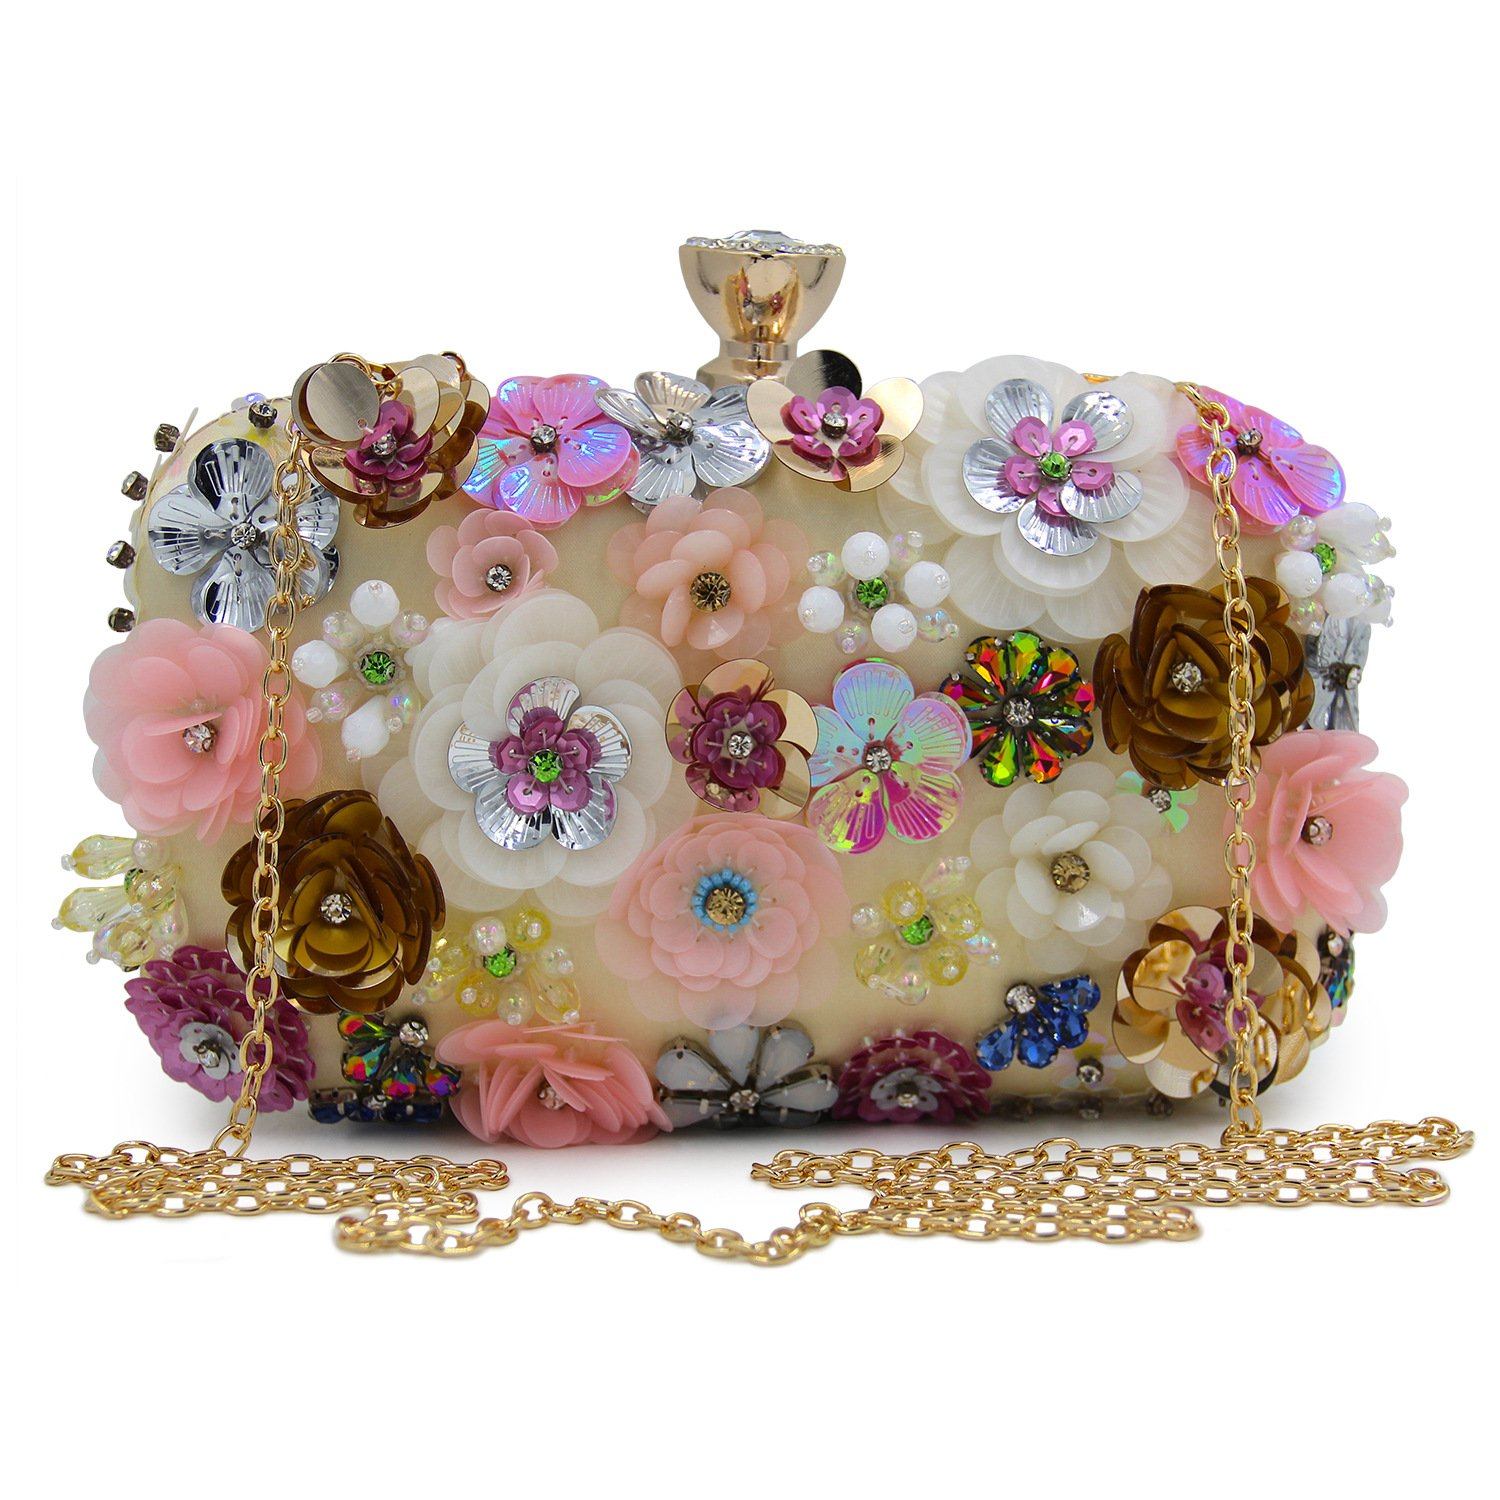 ba7235e163 Flada Girl s Colored Flowers Rhinestone Clutch Handbag Evening Prom Party Purse  Bags Gold  Amazon.co.uk  Luggage